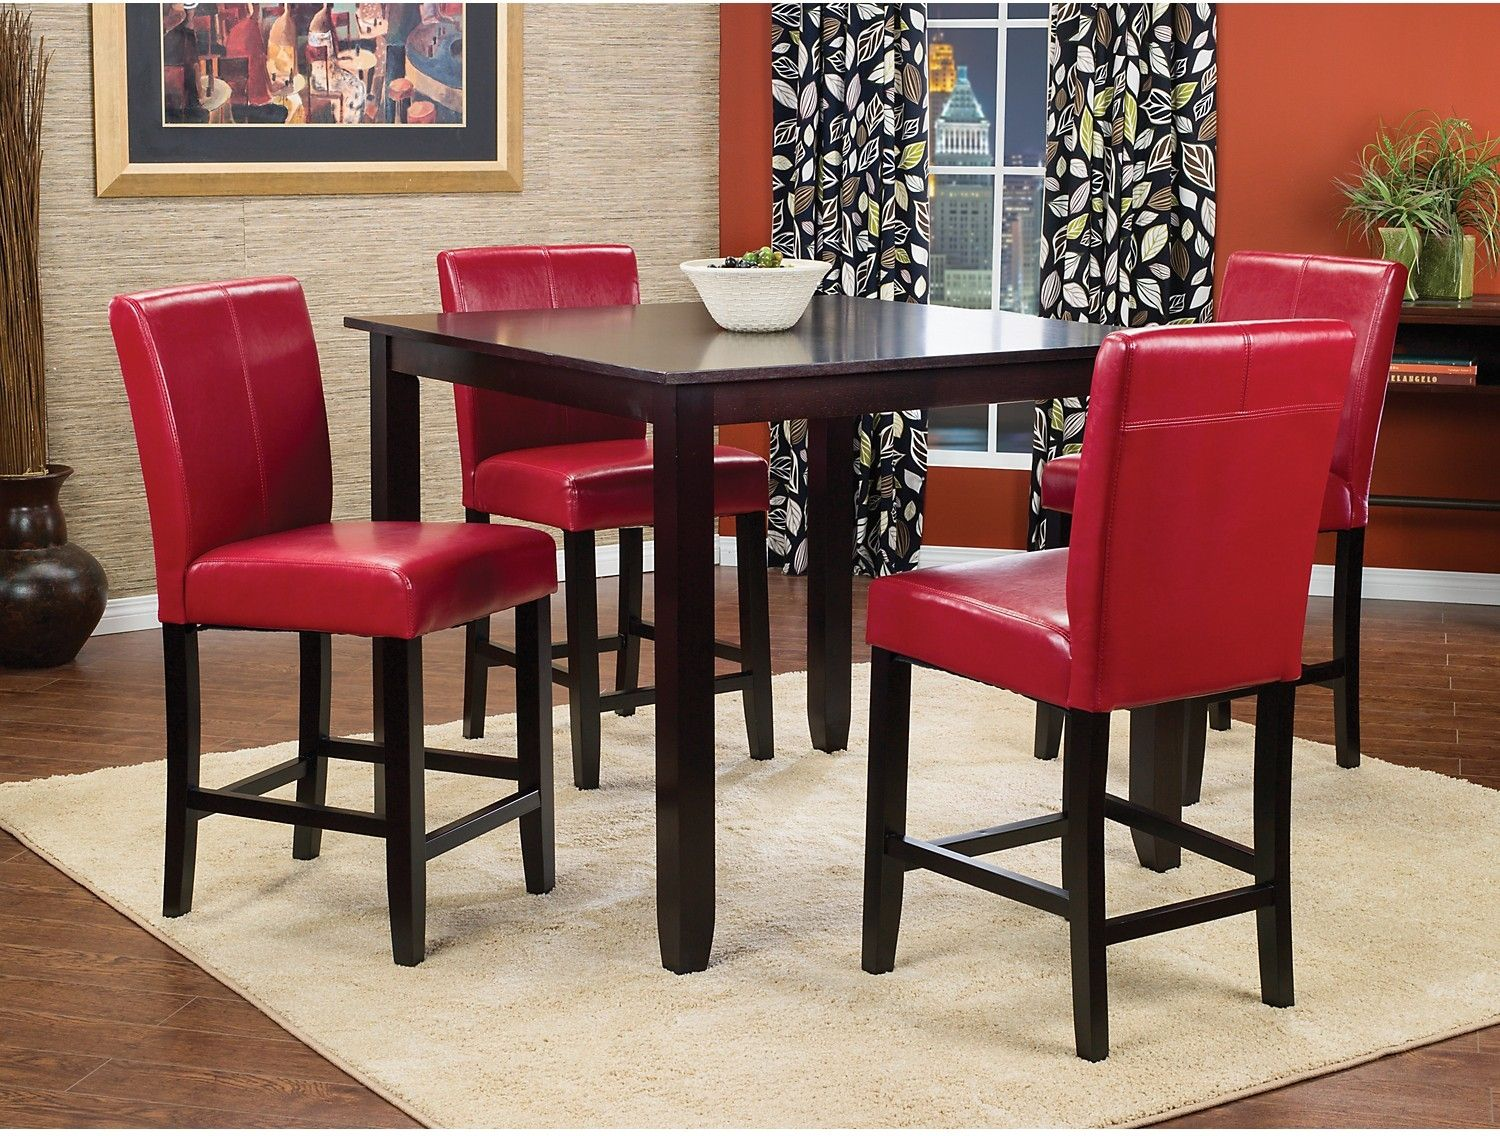 Stühle Küchentisch Nicole 5-piece Counter-height Dining Package With Red